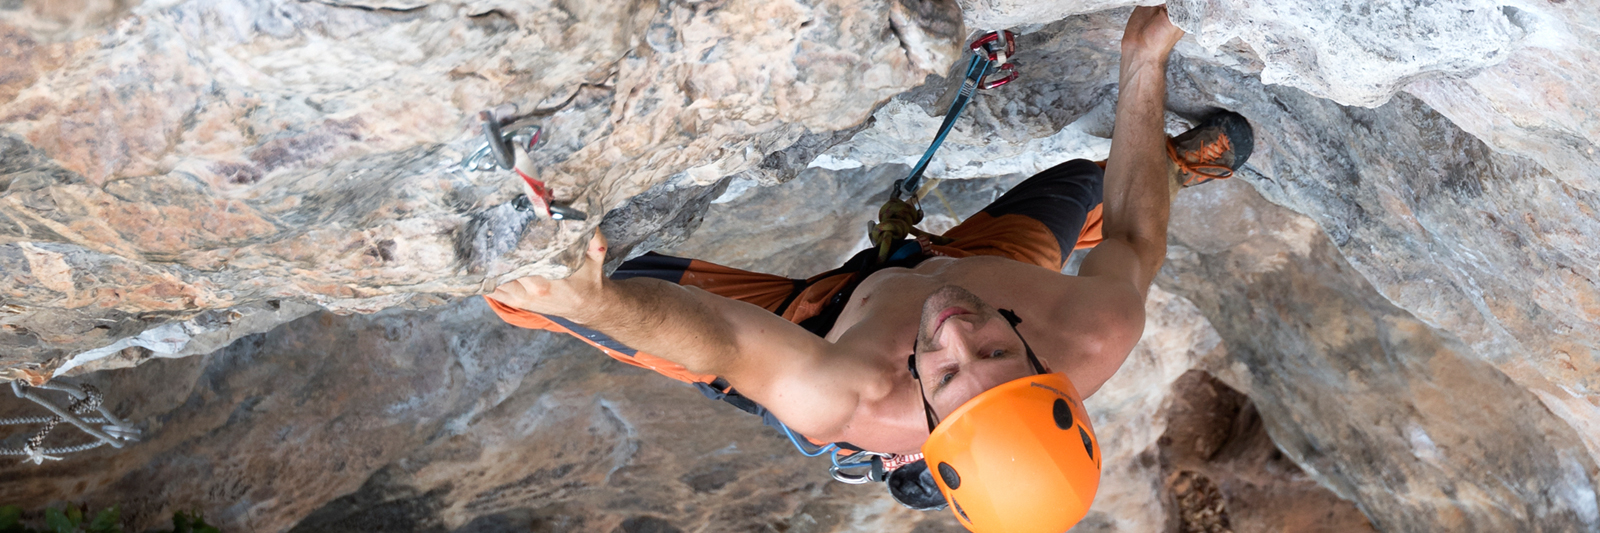 Thailand-Sport-Climbing-Holiday_7561